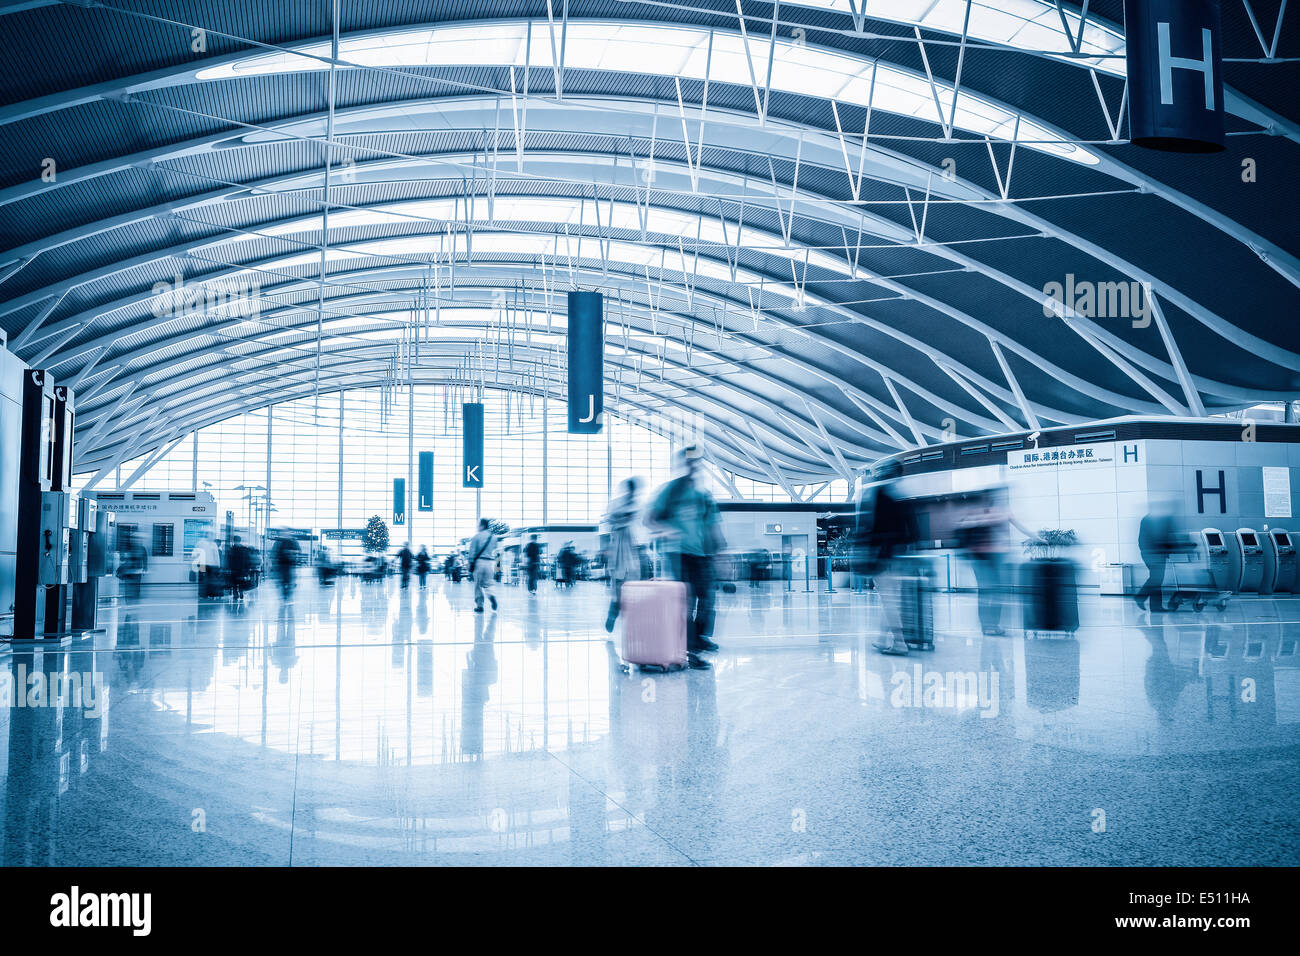 airline passengers in the airport - Stock Image